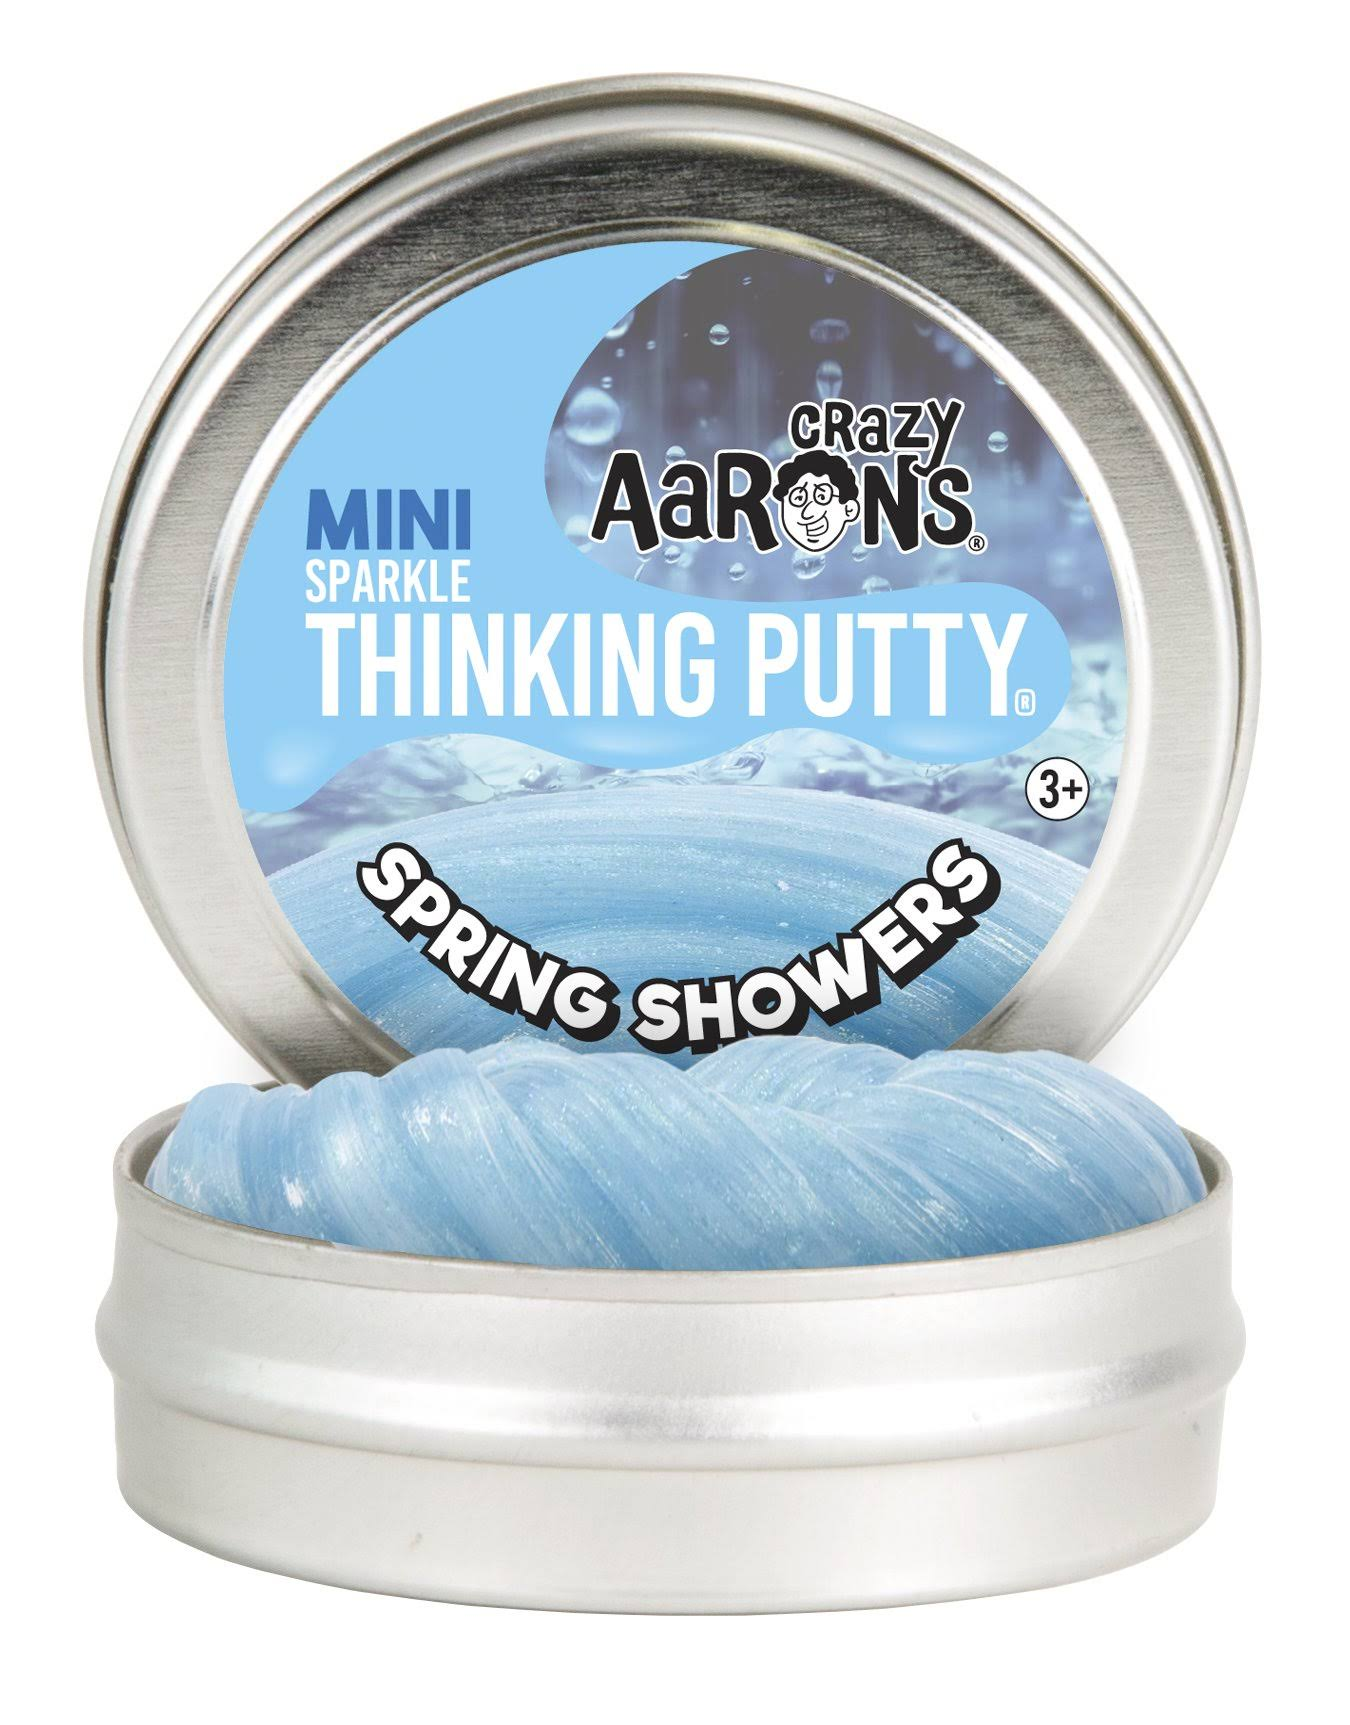 Crazy Aaron's Sparkle Thinking Putty Mini - Spring Showers